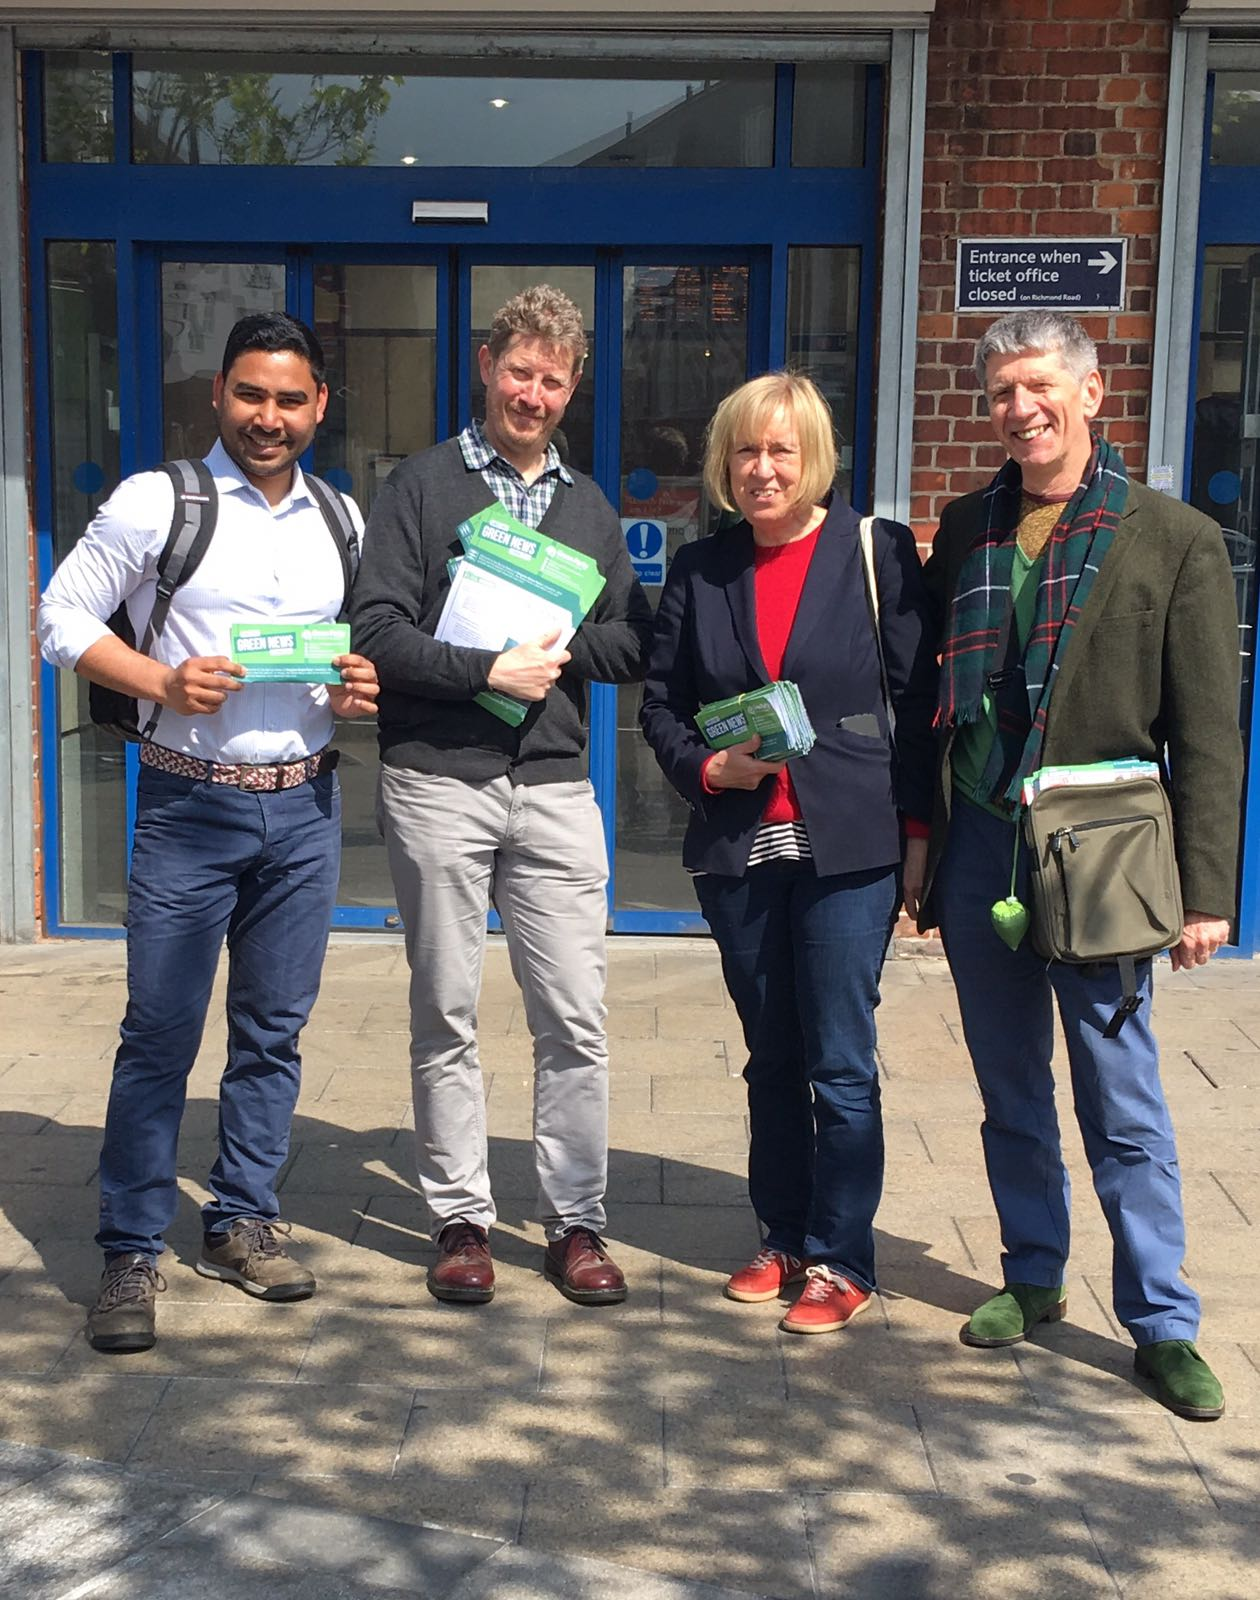 Lewisham Greens Speaking to local residents